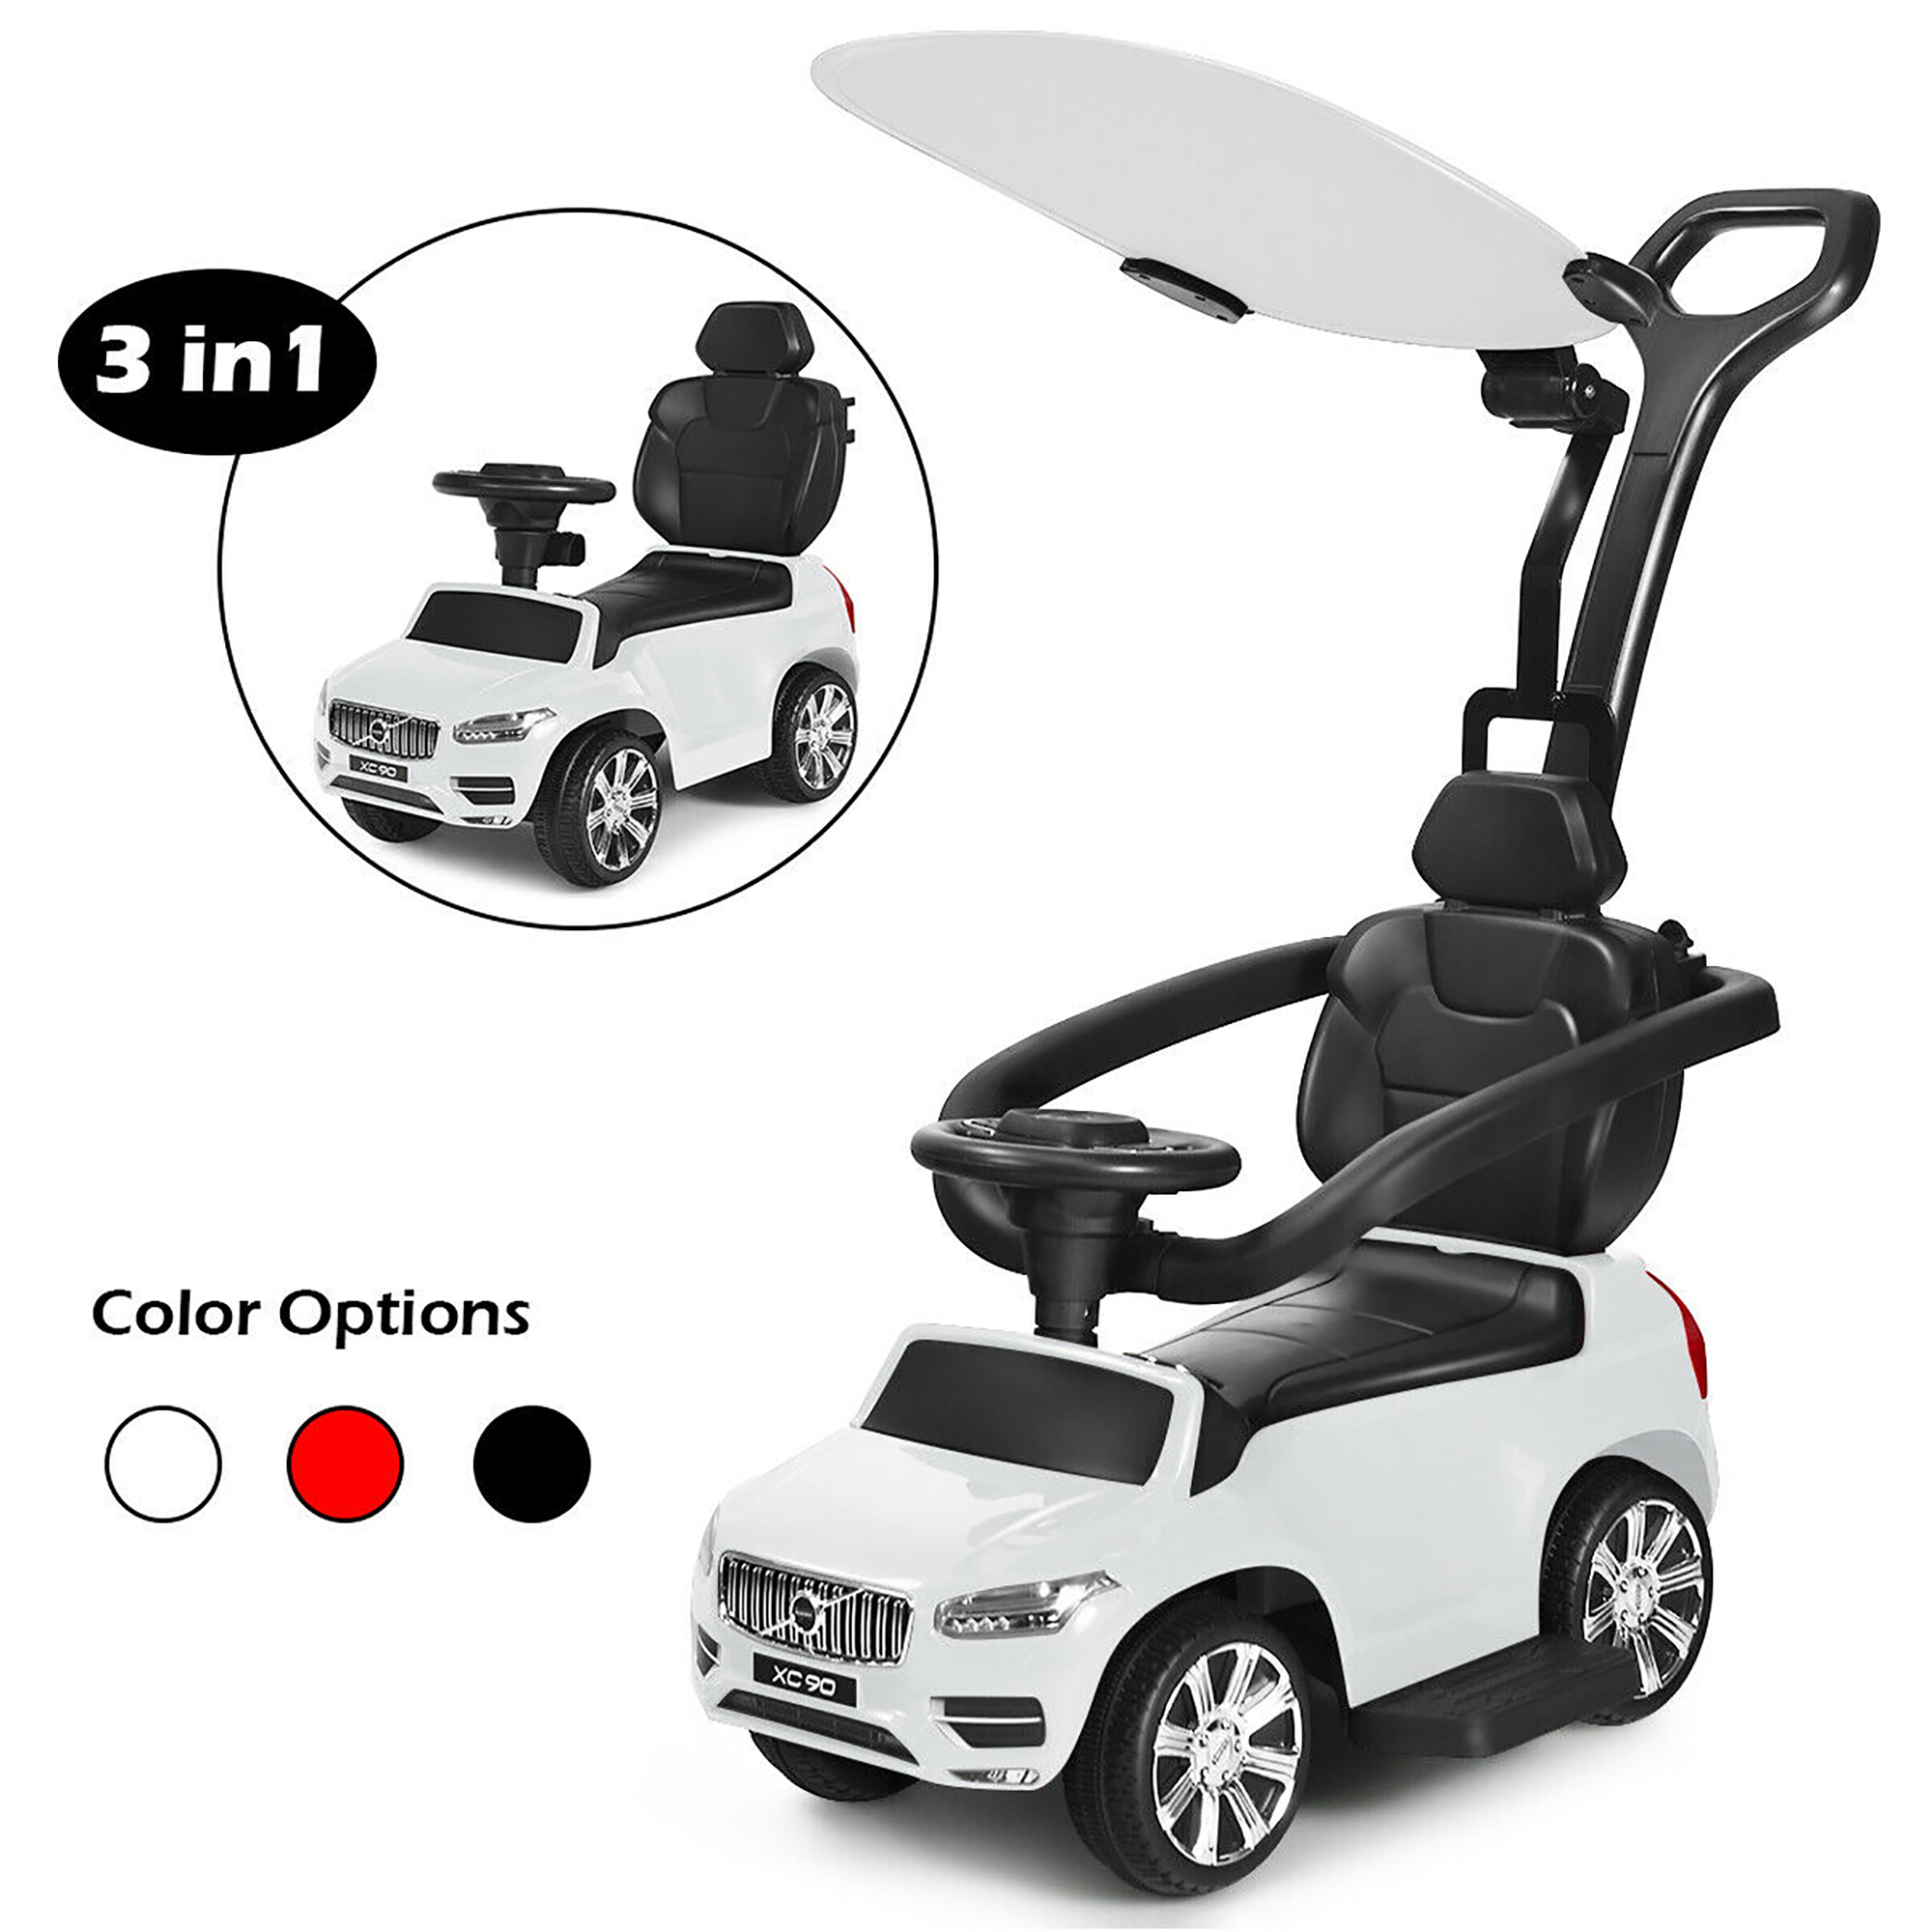 Uenjoy Ride On Toys 3 in 1 Baby Push Car,Convertible Toddler Walker/&Stroller Car Light for 10-48 Months Boys/&Girls,with Adjustable Push Rod Seat Belt-White Detachable Fence,Storage Space,Music